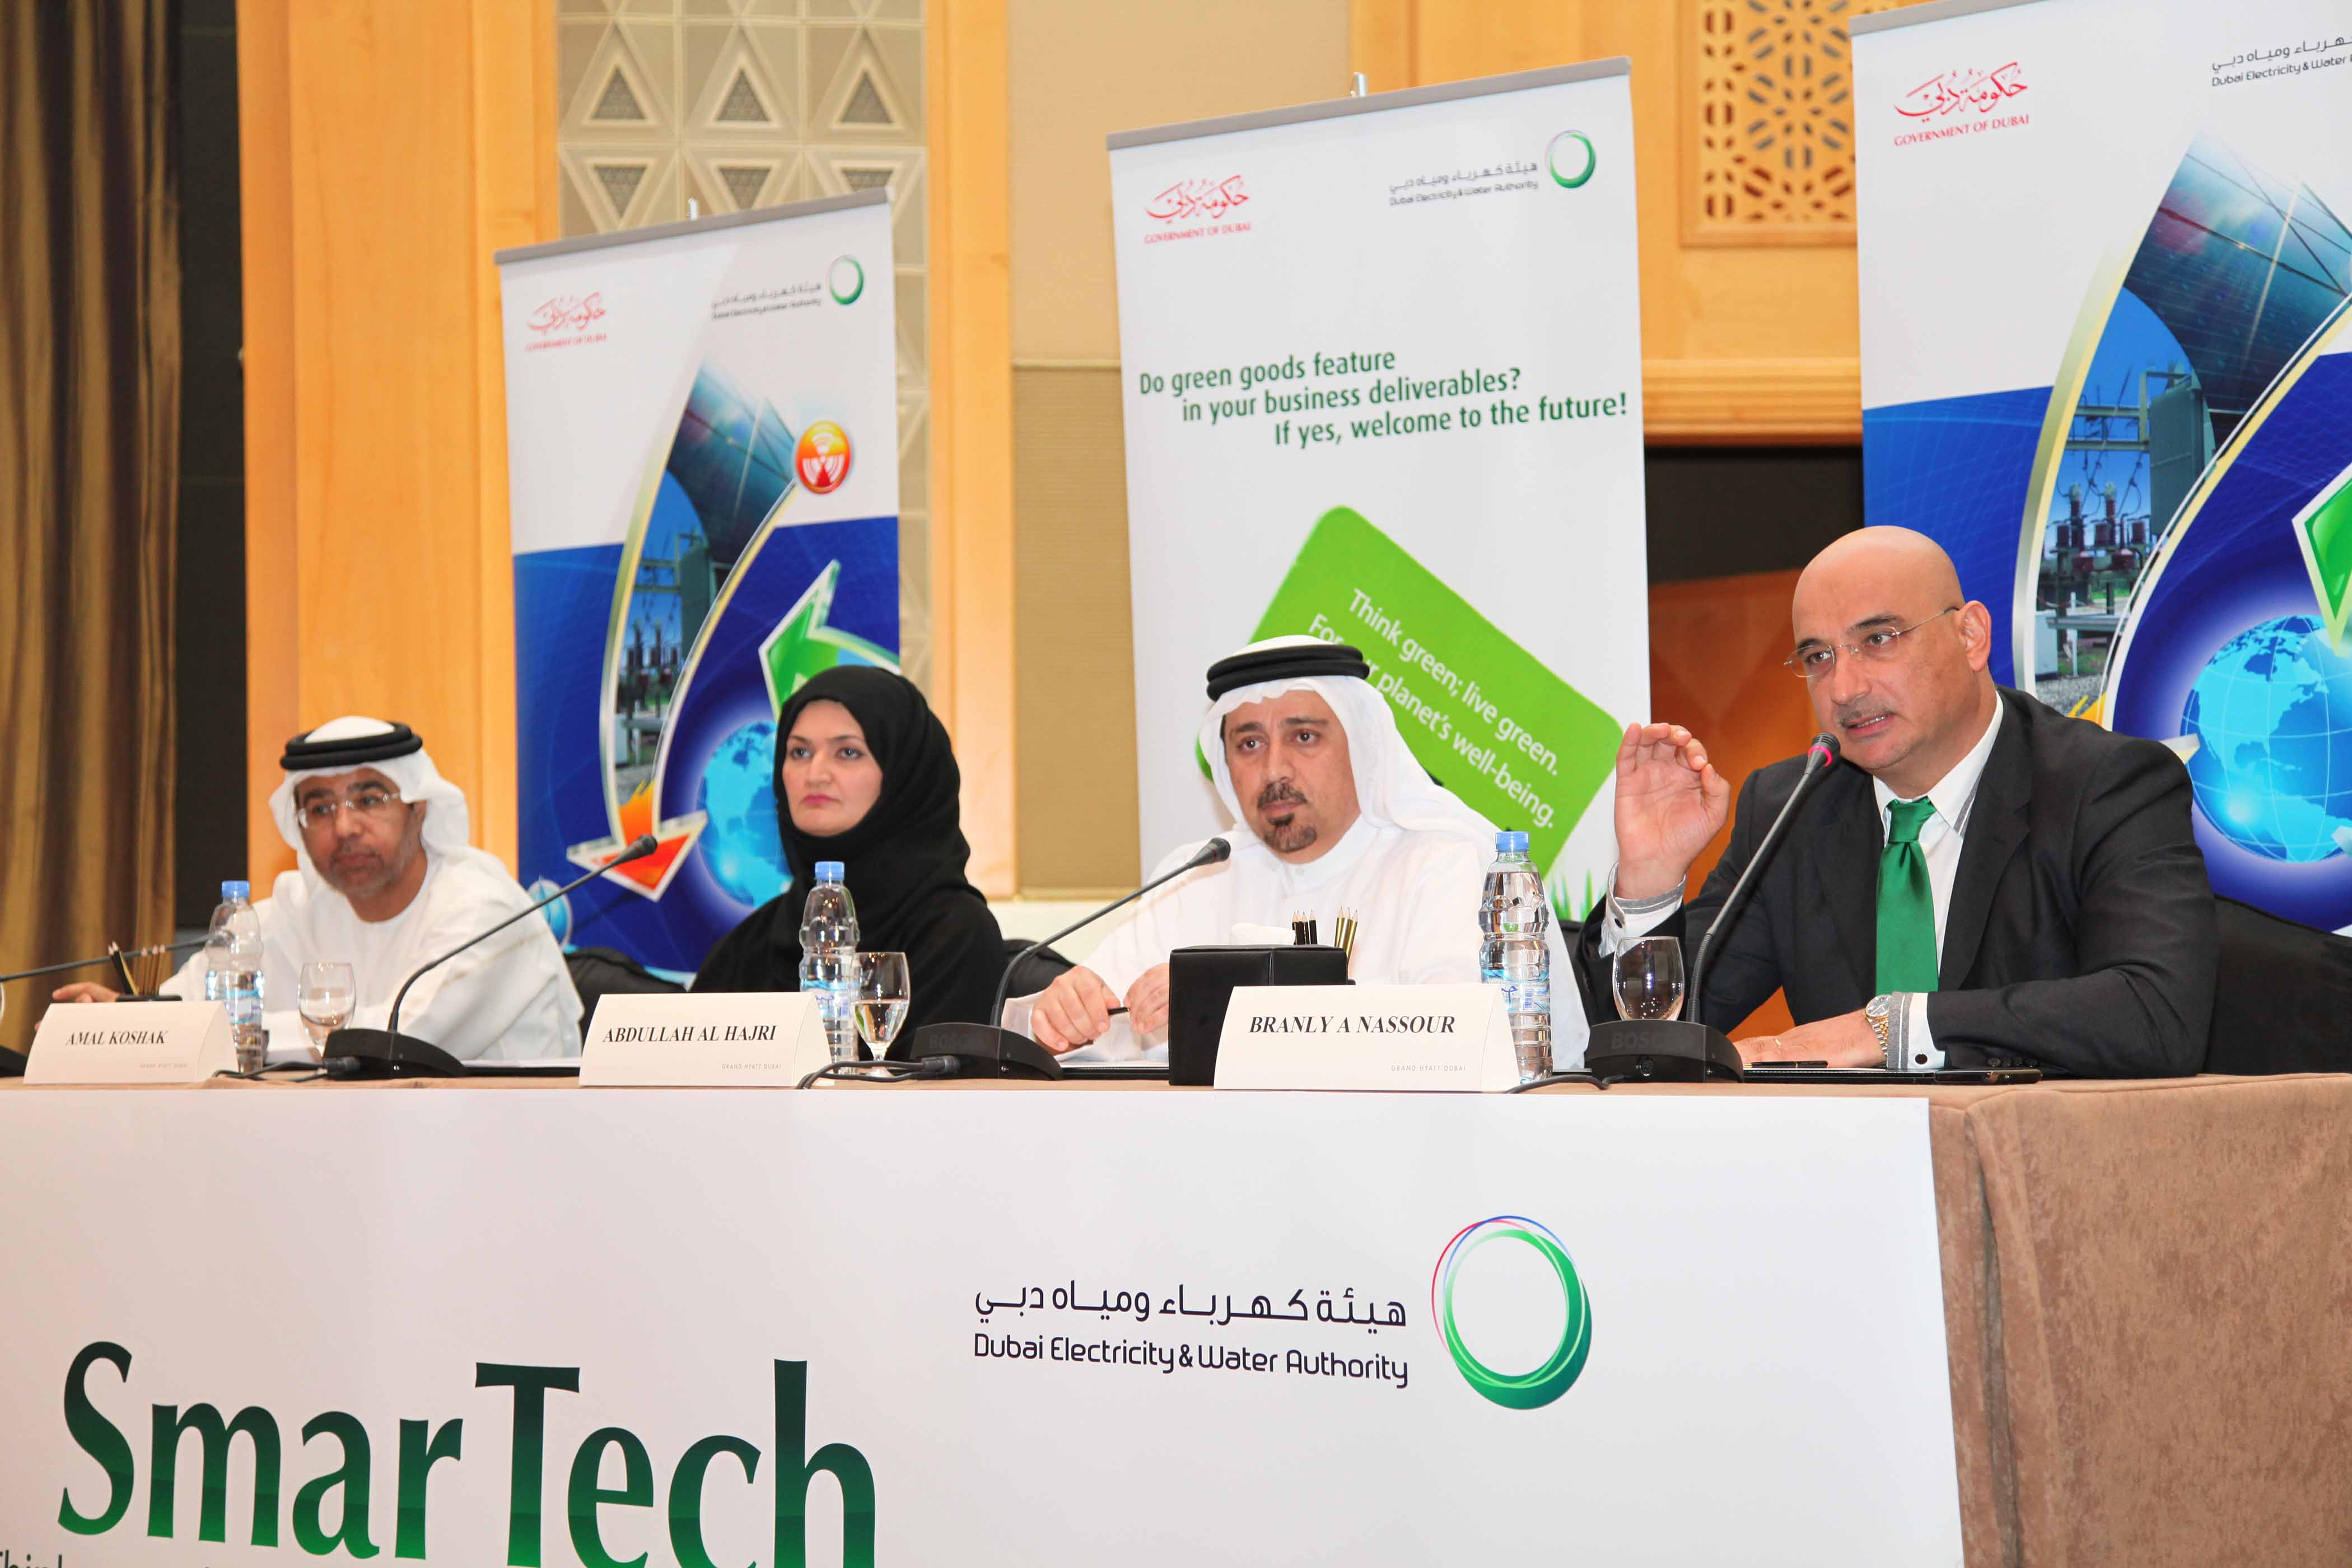 Dewa expects savings from green building reg